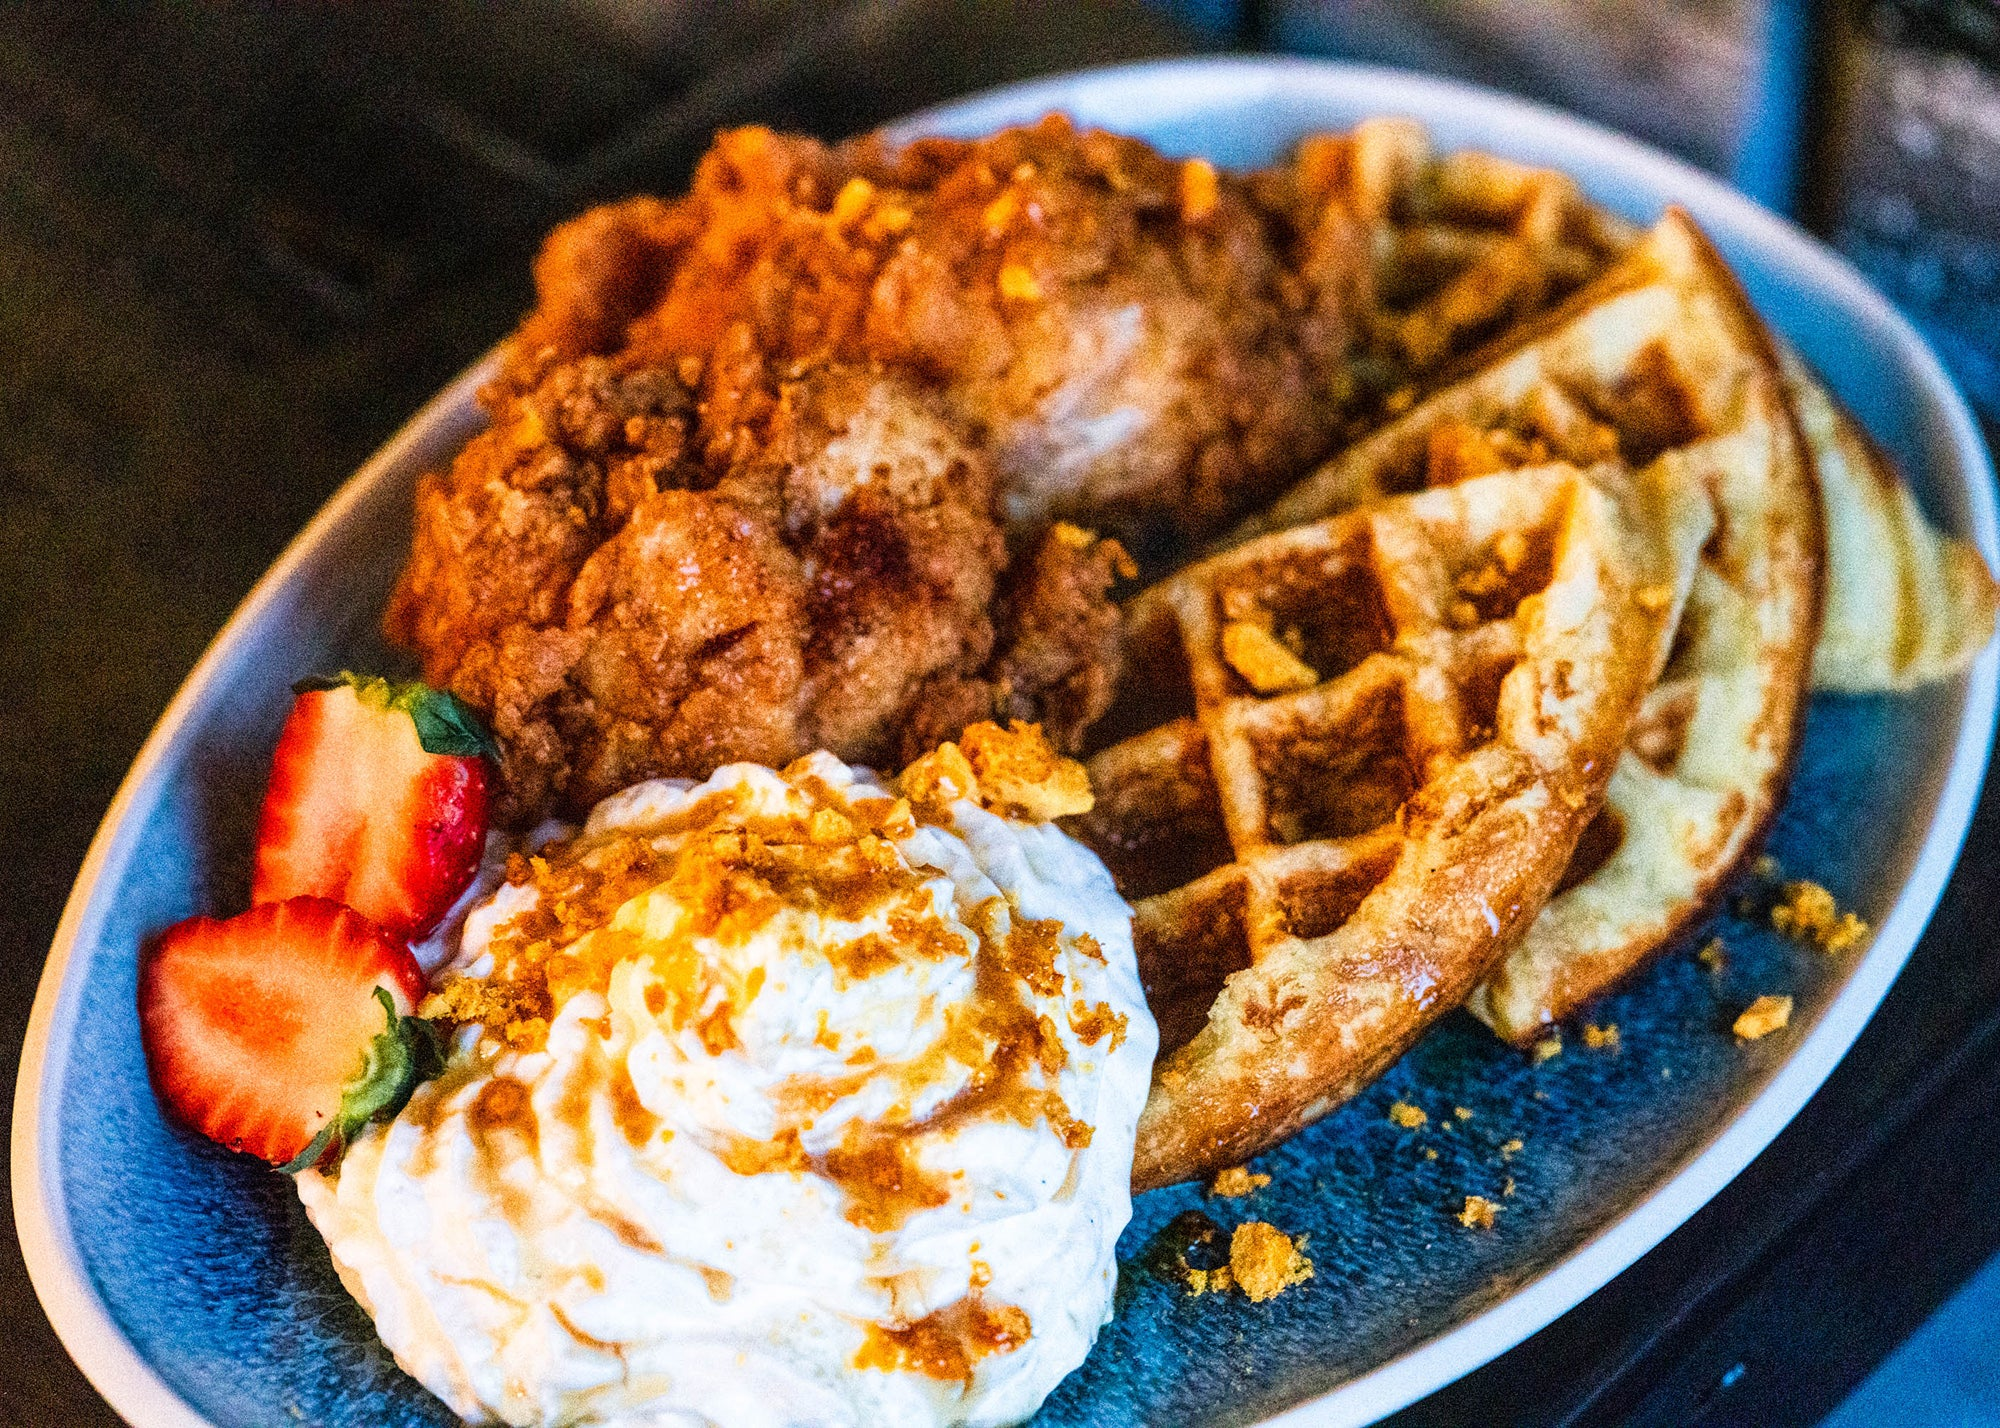 Chicken and waffles at The Pollo Club